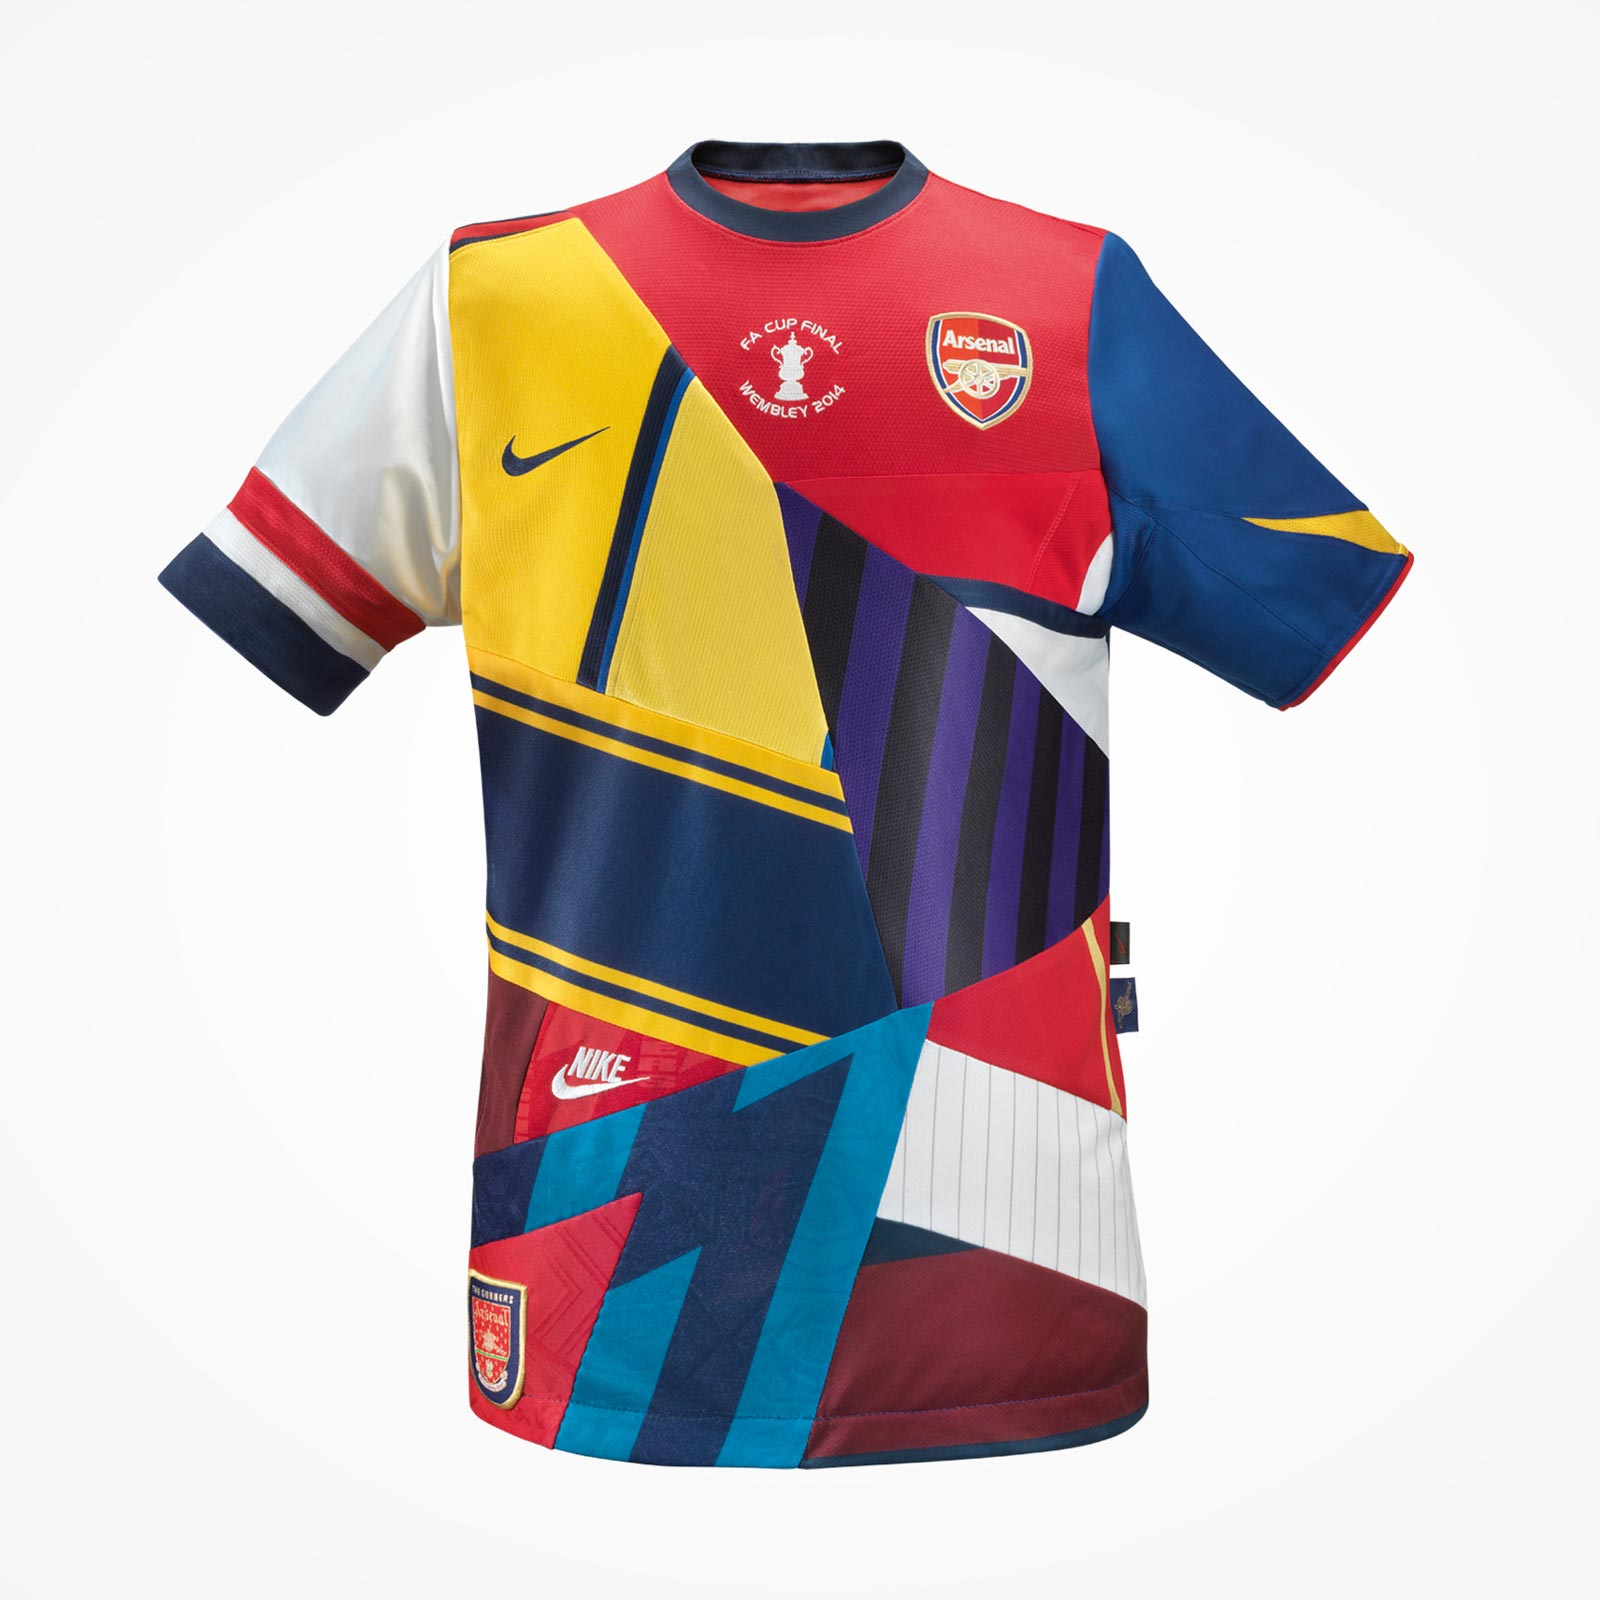 Nike to Release Limited Edition Barcelona Mashup Jersey to